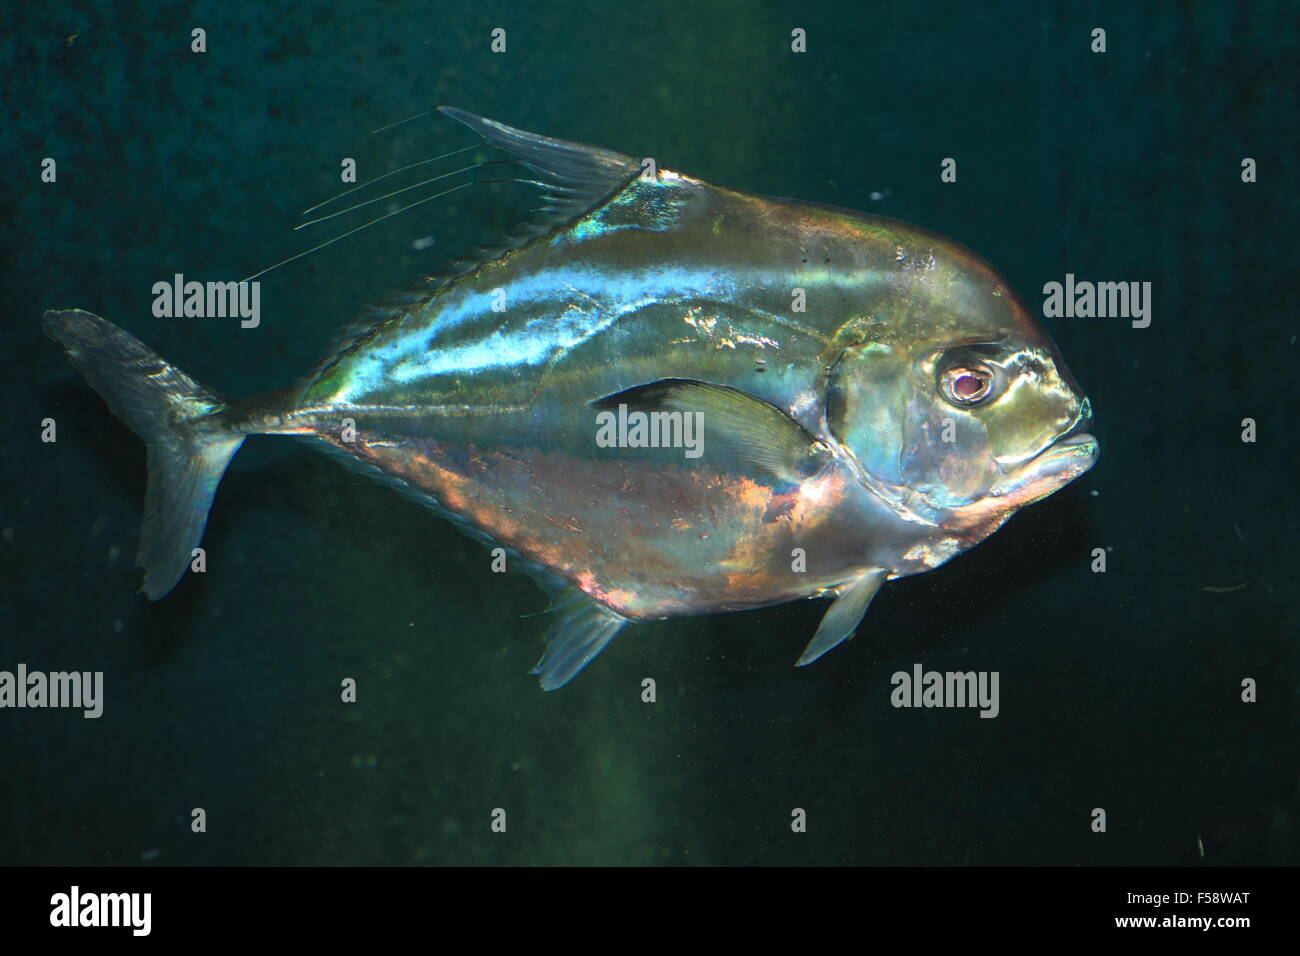 African pompano (Alectis ciliaris) in Japan - Stock Image